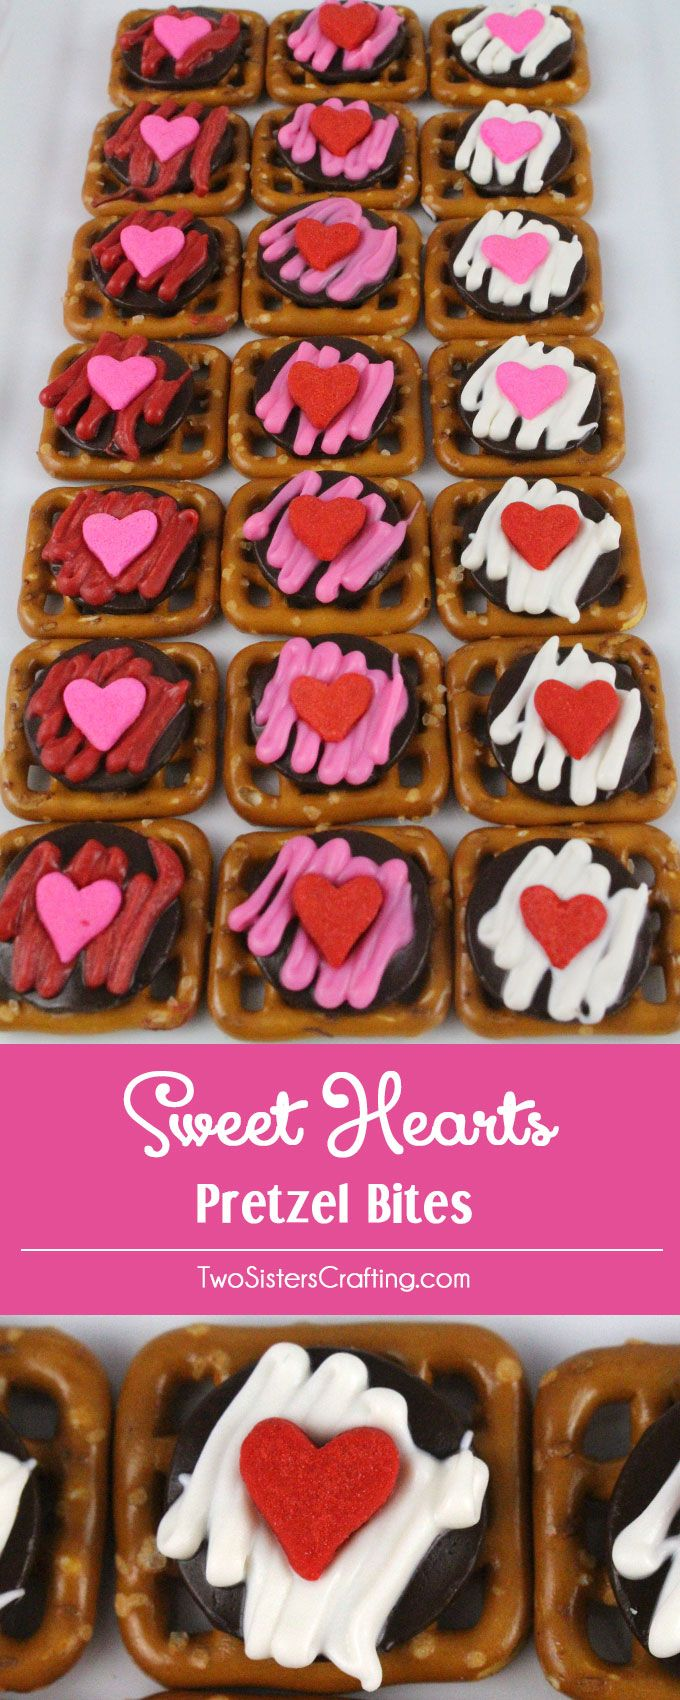 Our easy to make Sweet Heart Pretzel Bites are delicious bites of sweet and salty goodness and a fun and unique Valentines Day Treat. Follow us for more great Valentines Day Food Ideas.